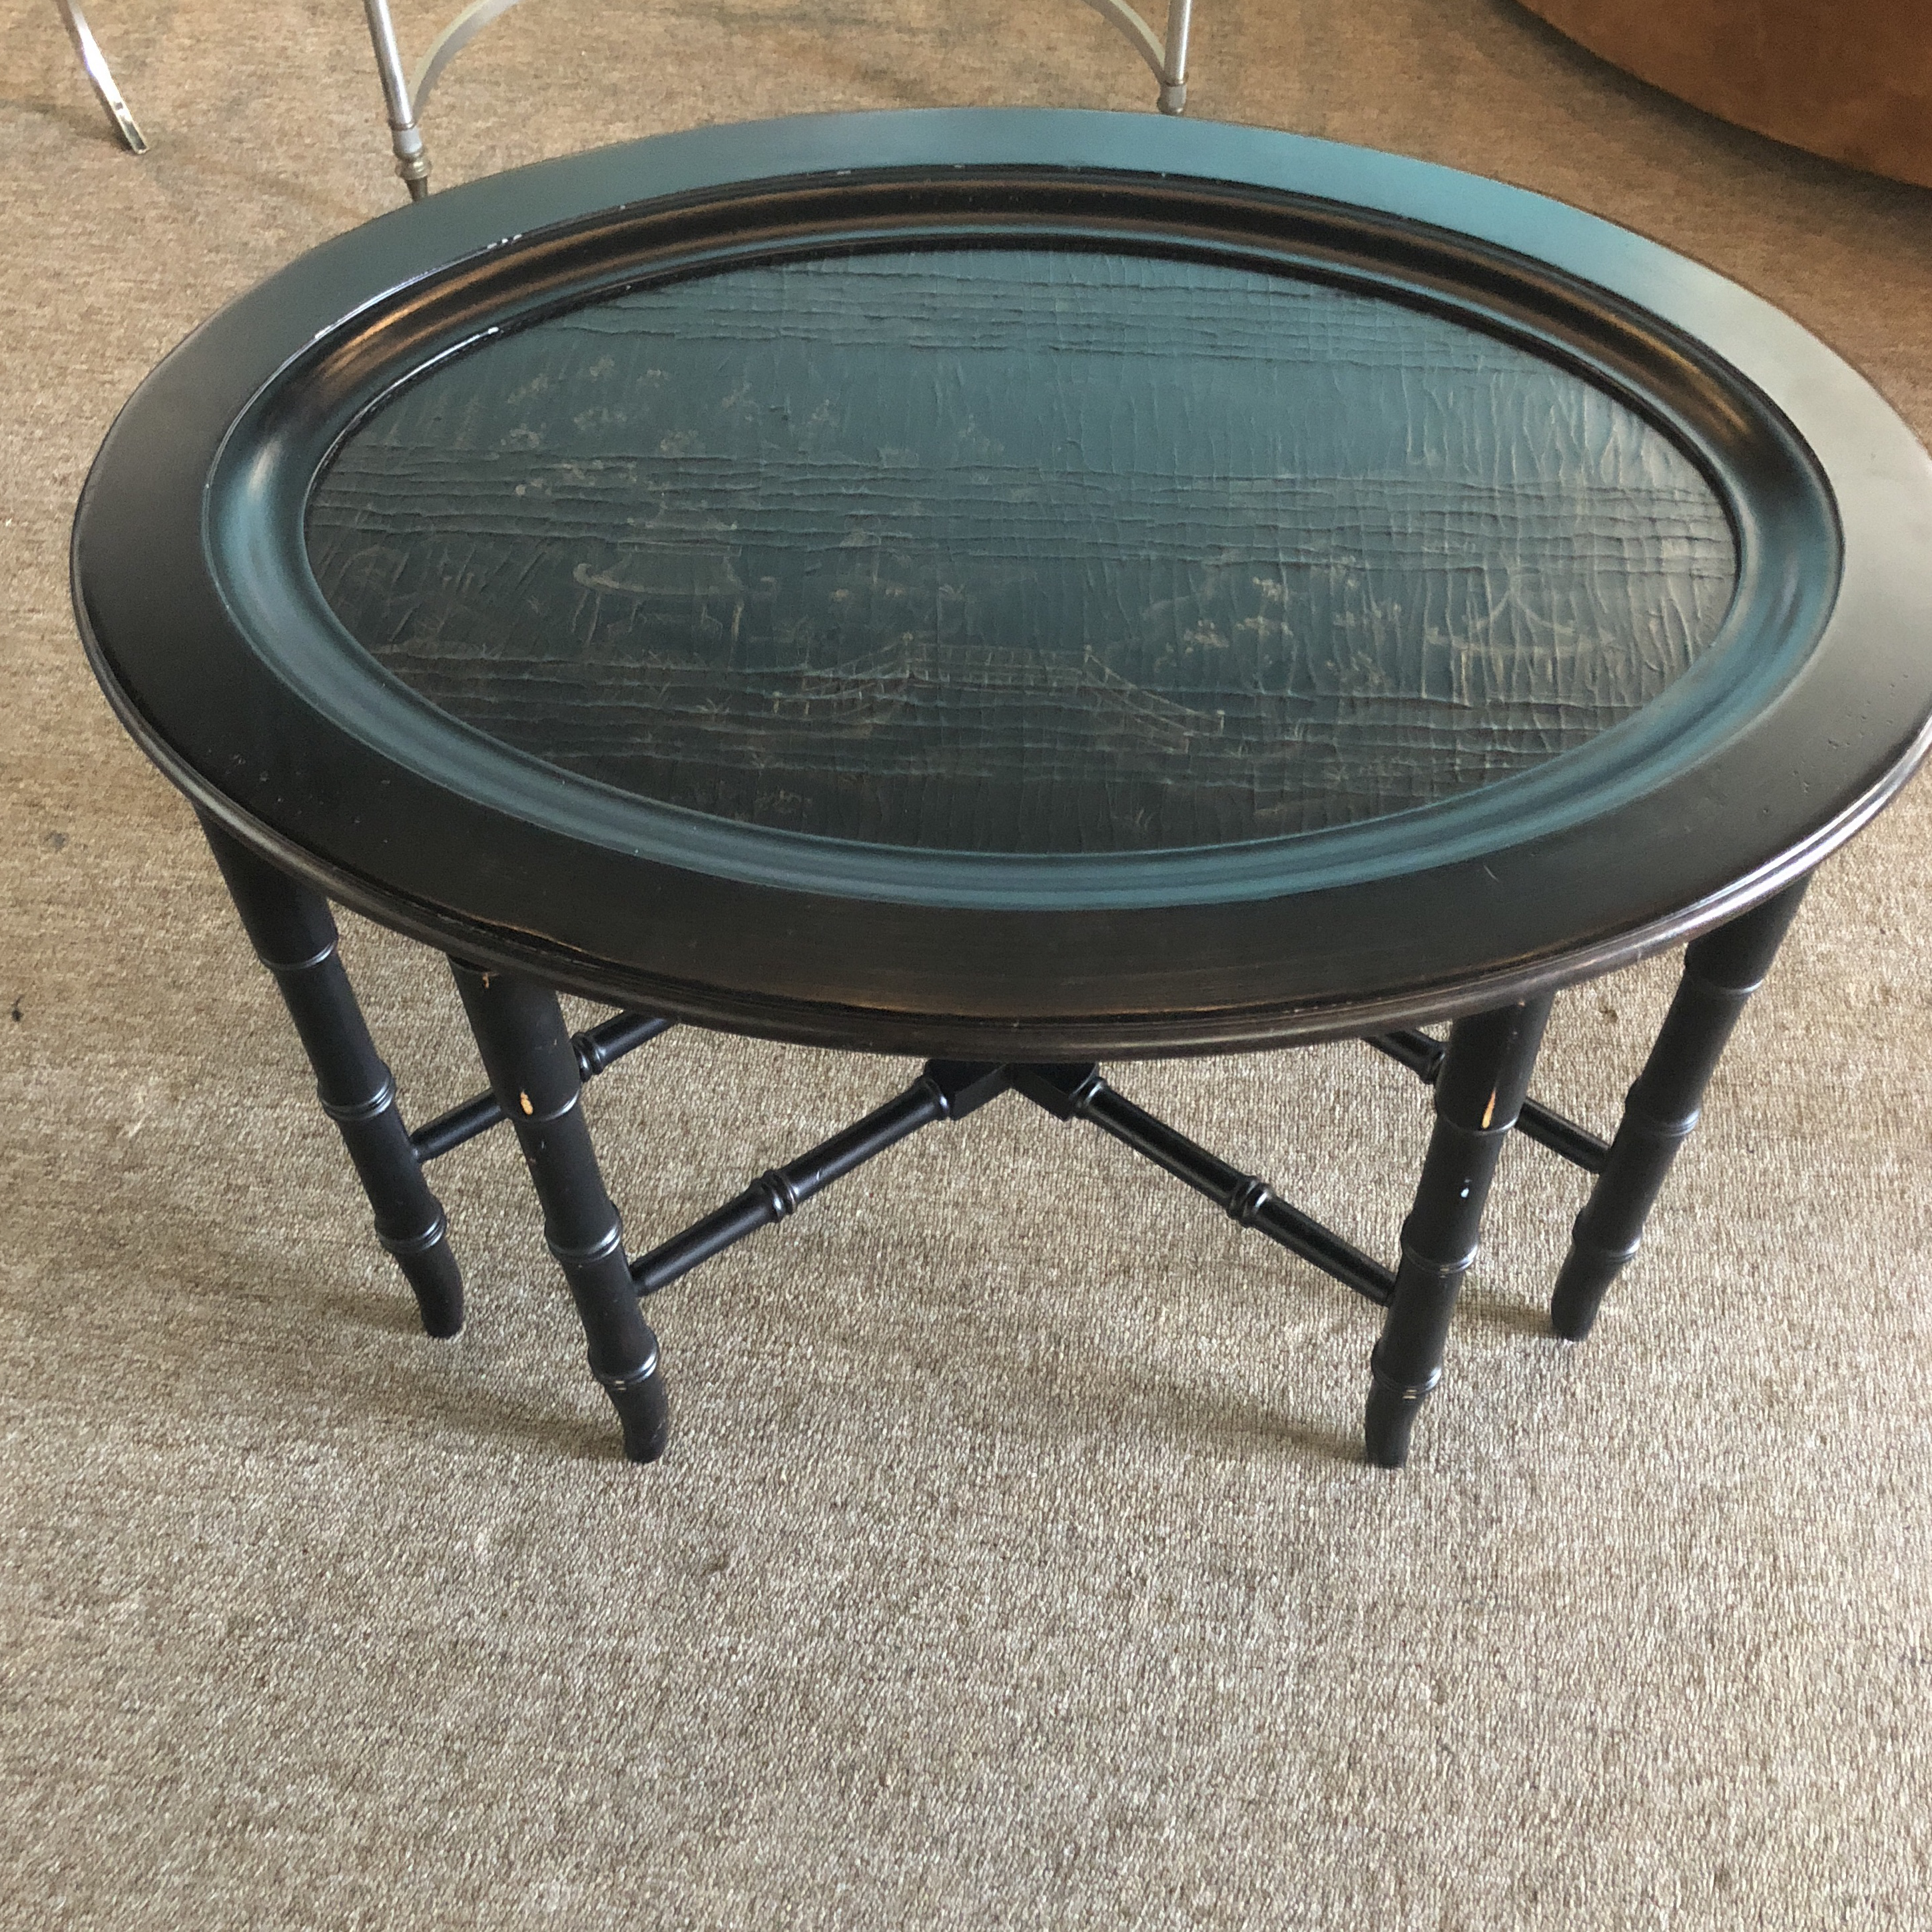 Vintage Chinoiserie Style Lift Off Tray Table From Ethan Allen. Good  Quality With Nice Faux